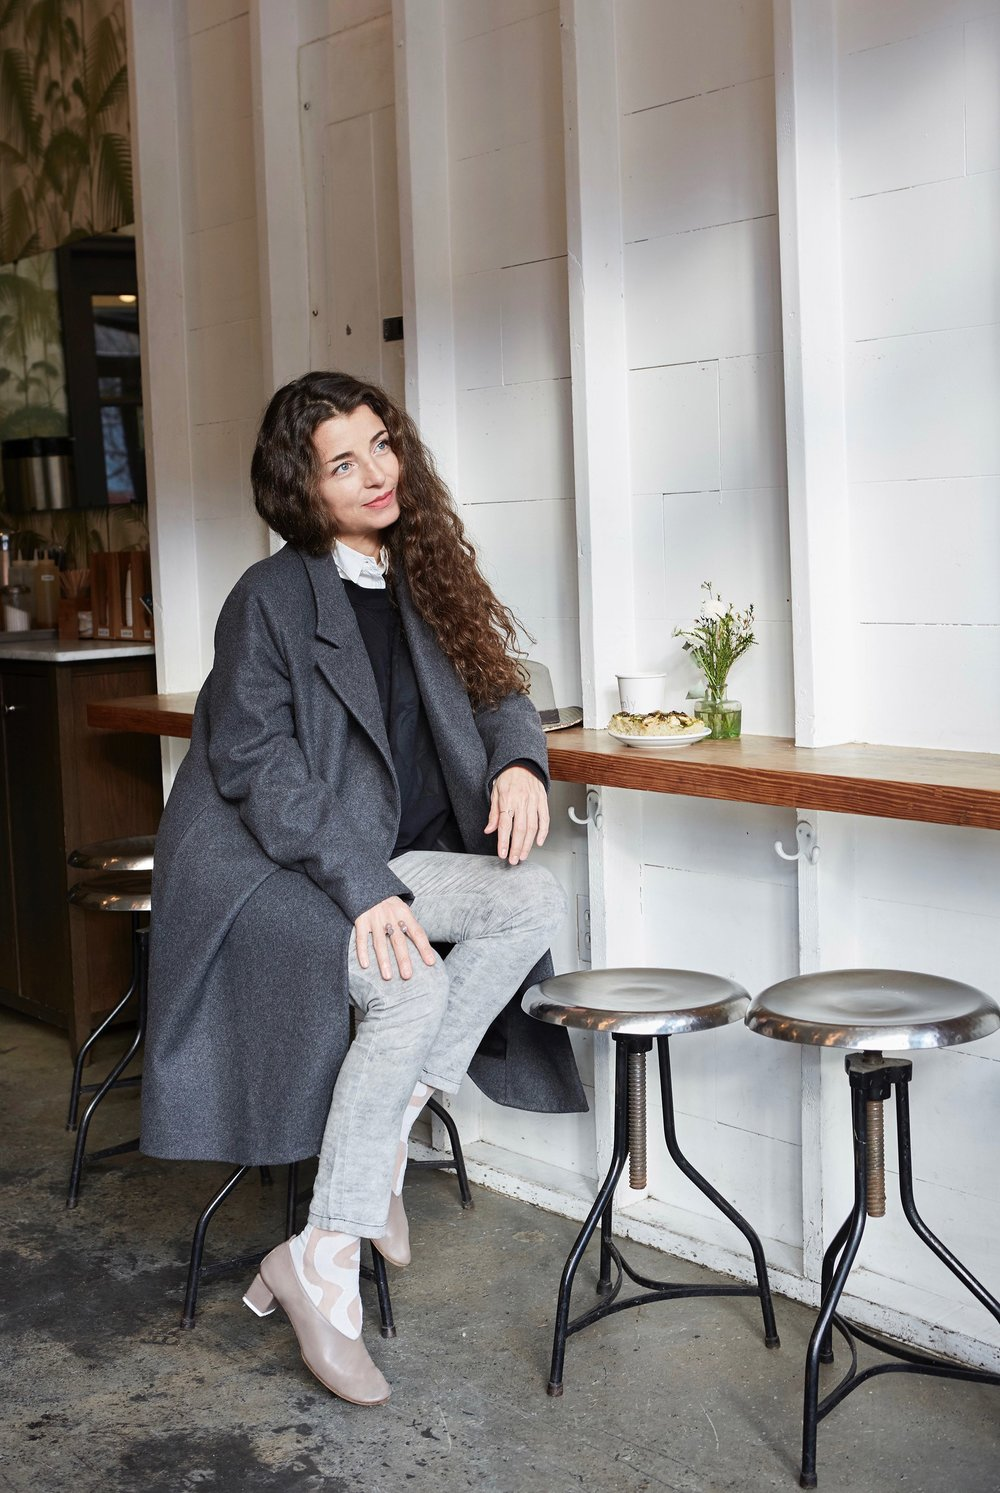 Silvia Avanzi - The woman behind the sculptural Gray Mattersshoes